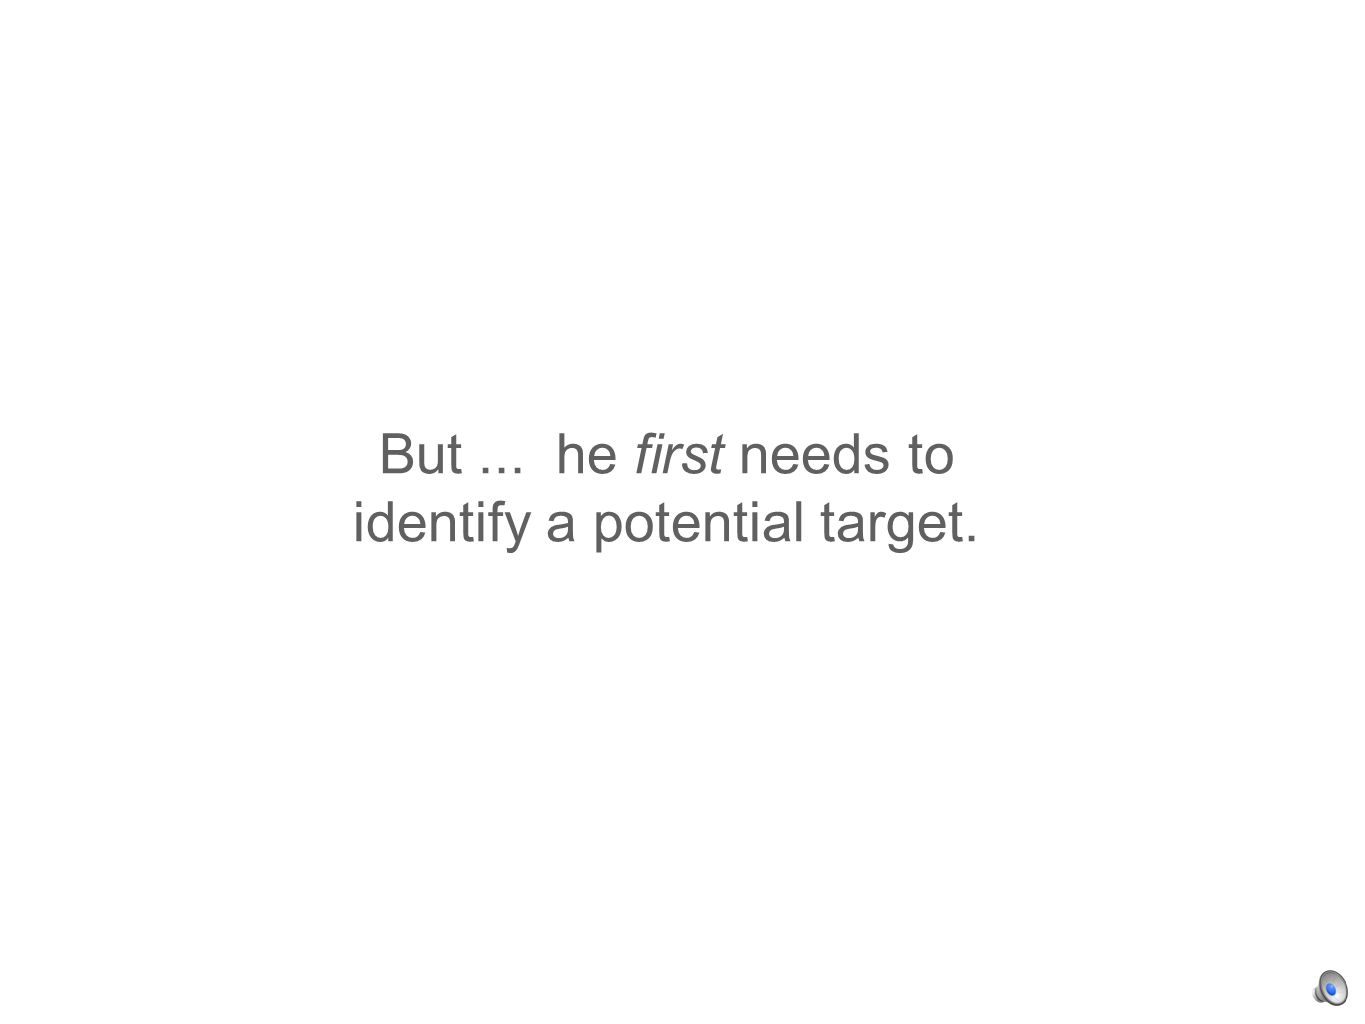 But... he first needs to identify a potential target.